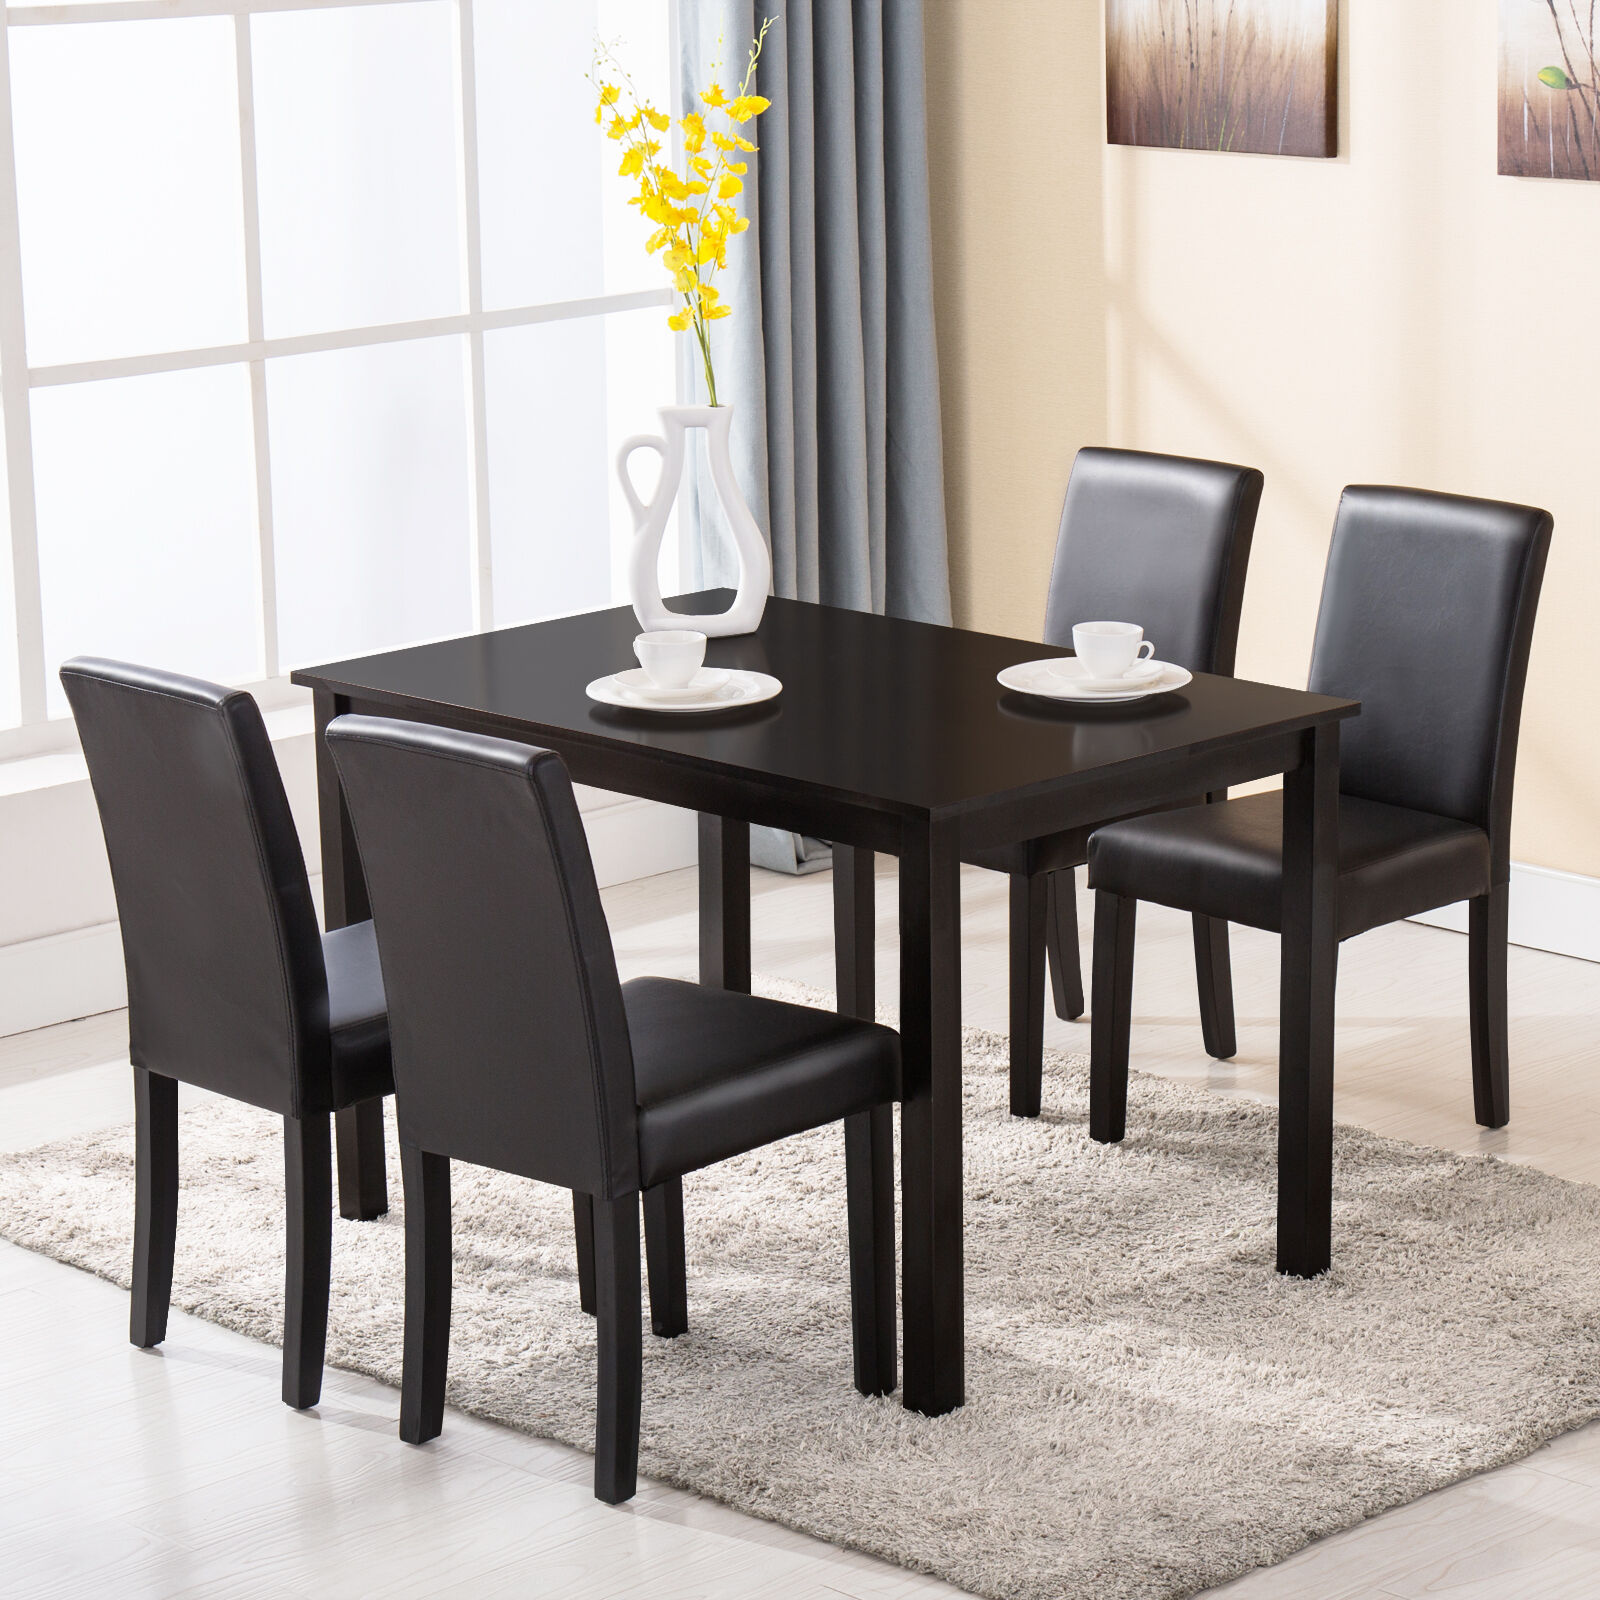 5 piece dining table set 4 chairs wood kitchen dinette for Dining room sets for 4